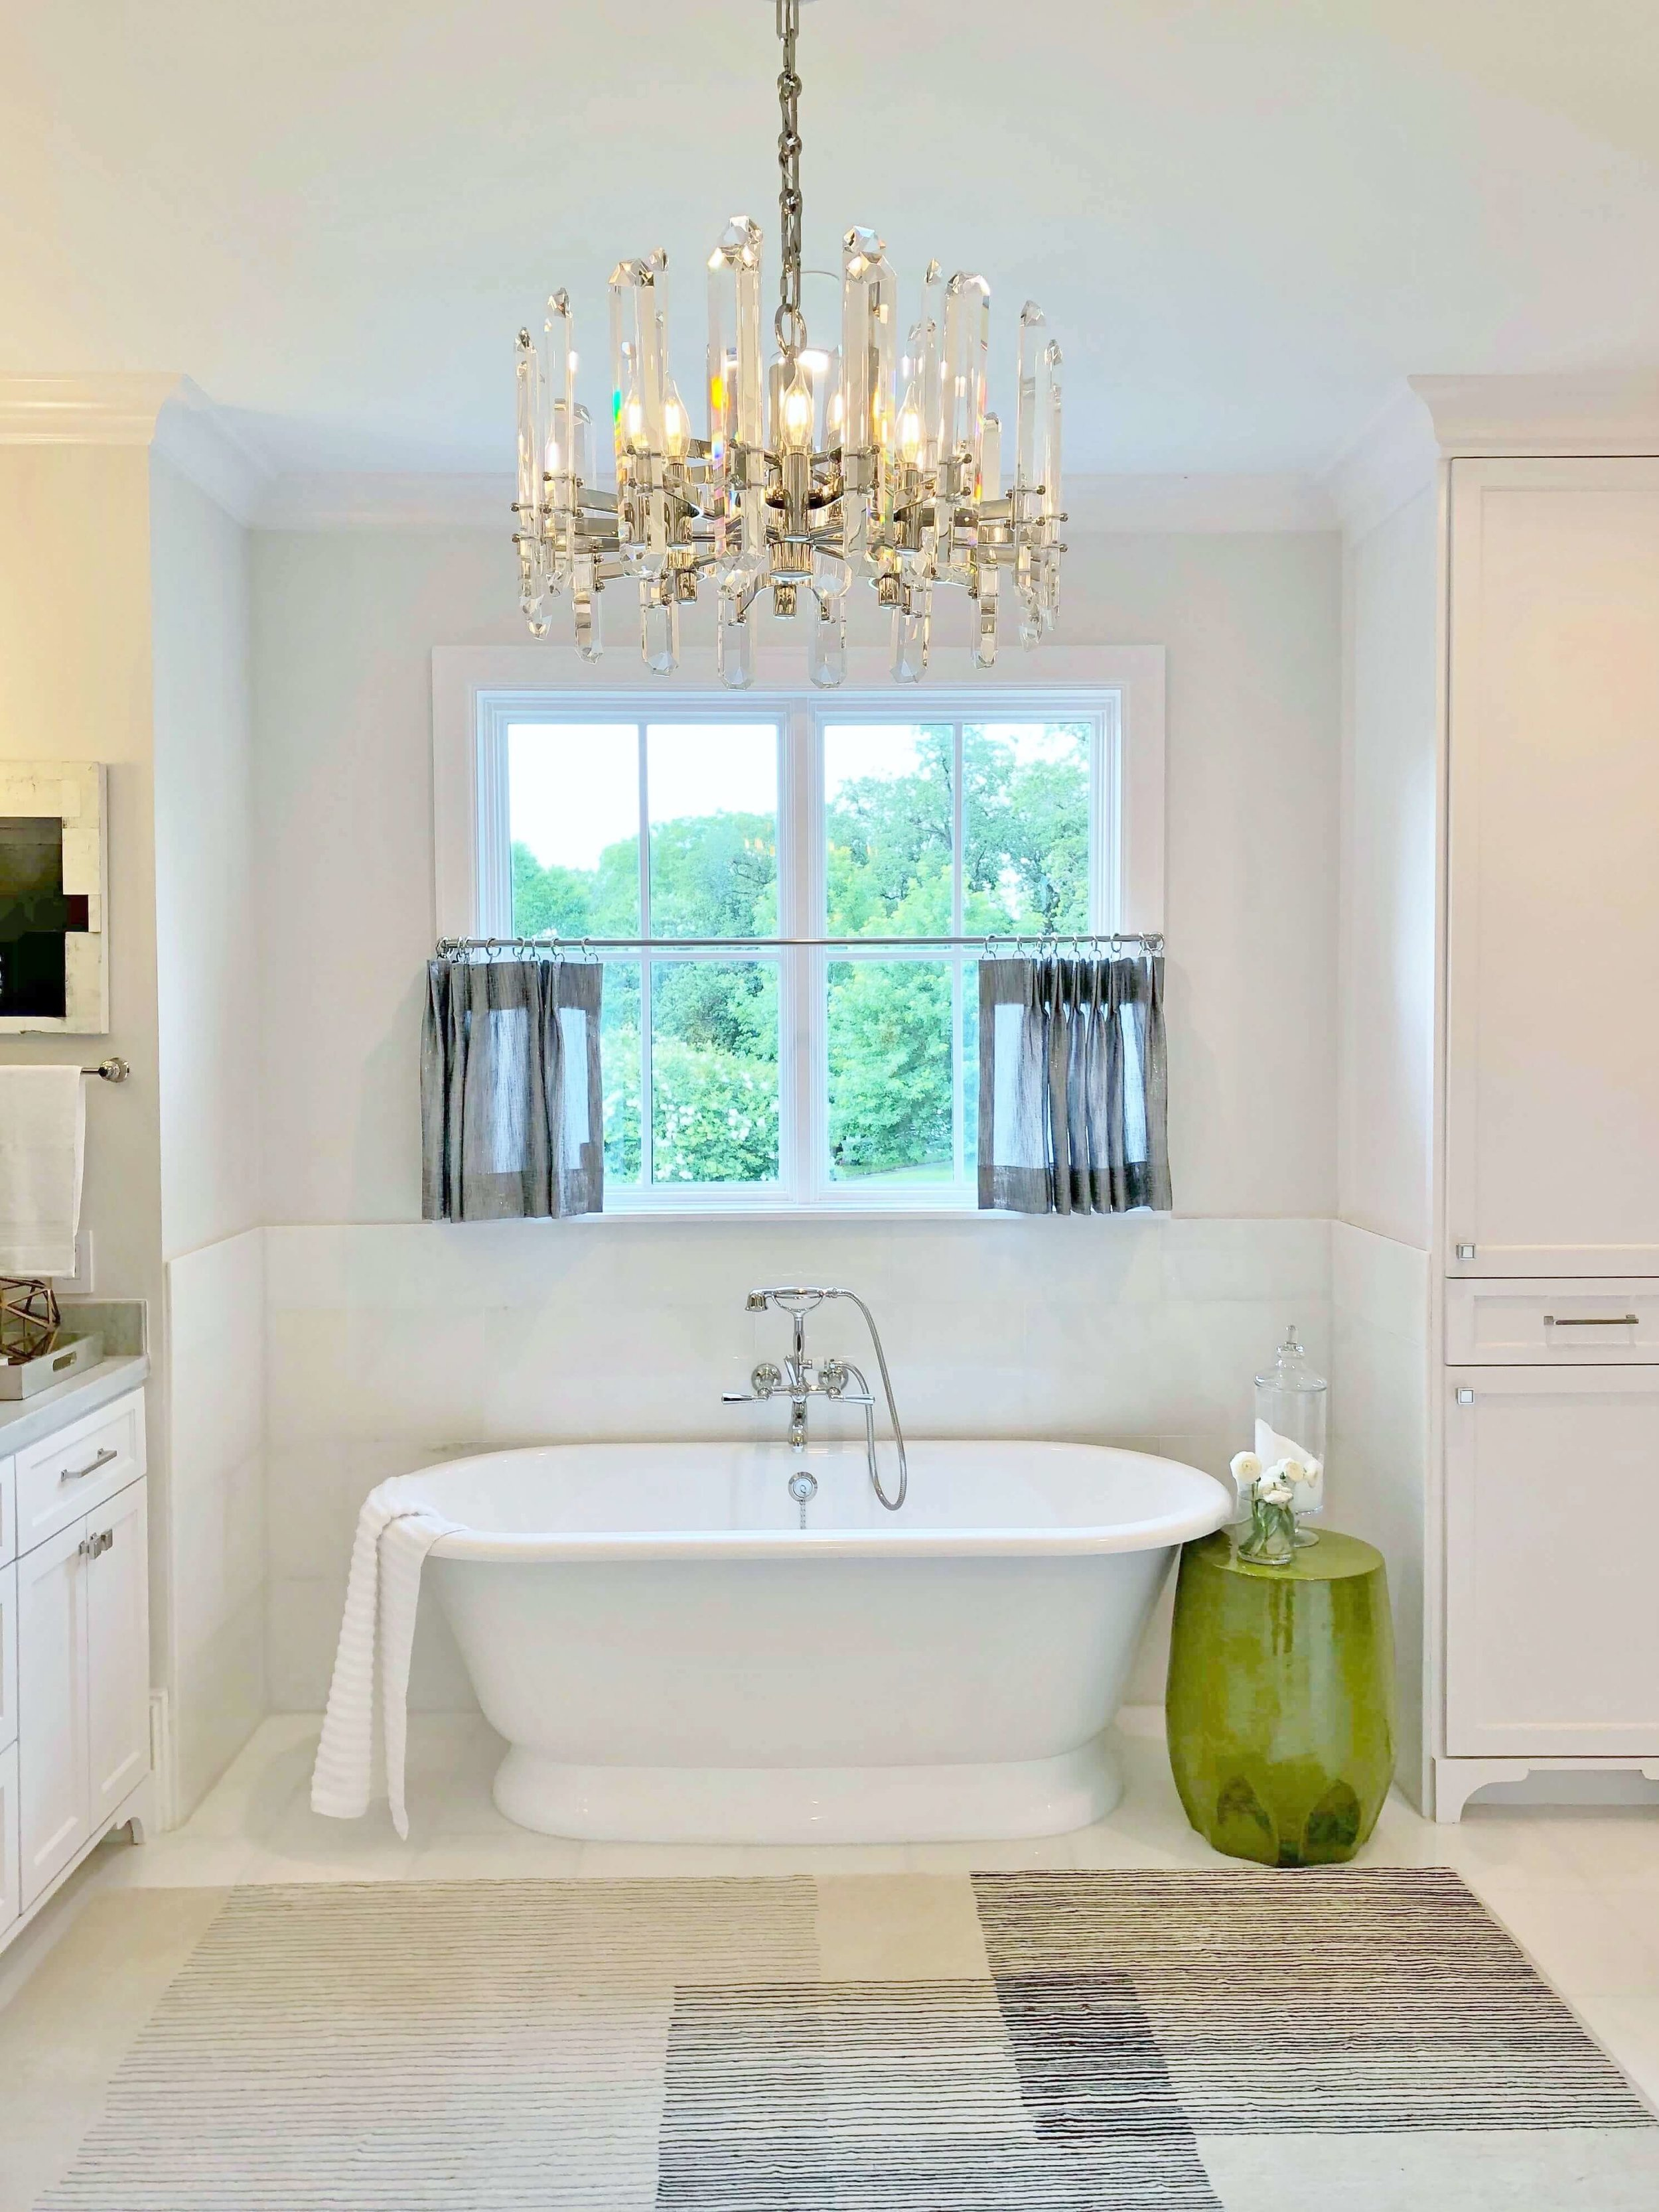 Bathroom Design Quick Tip Are Free Standing Tubs Still